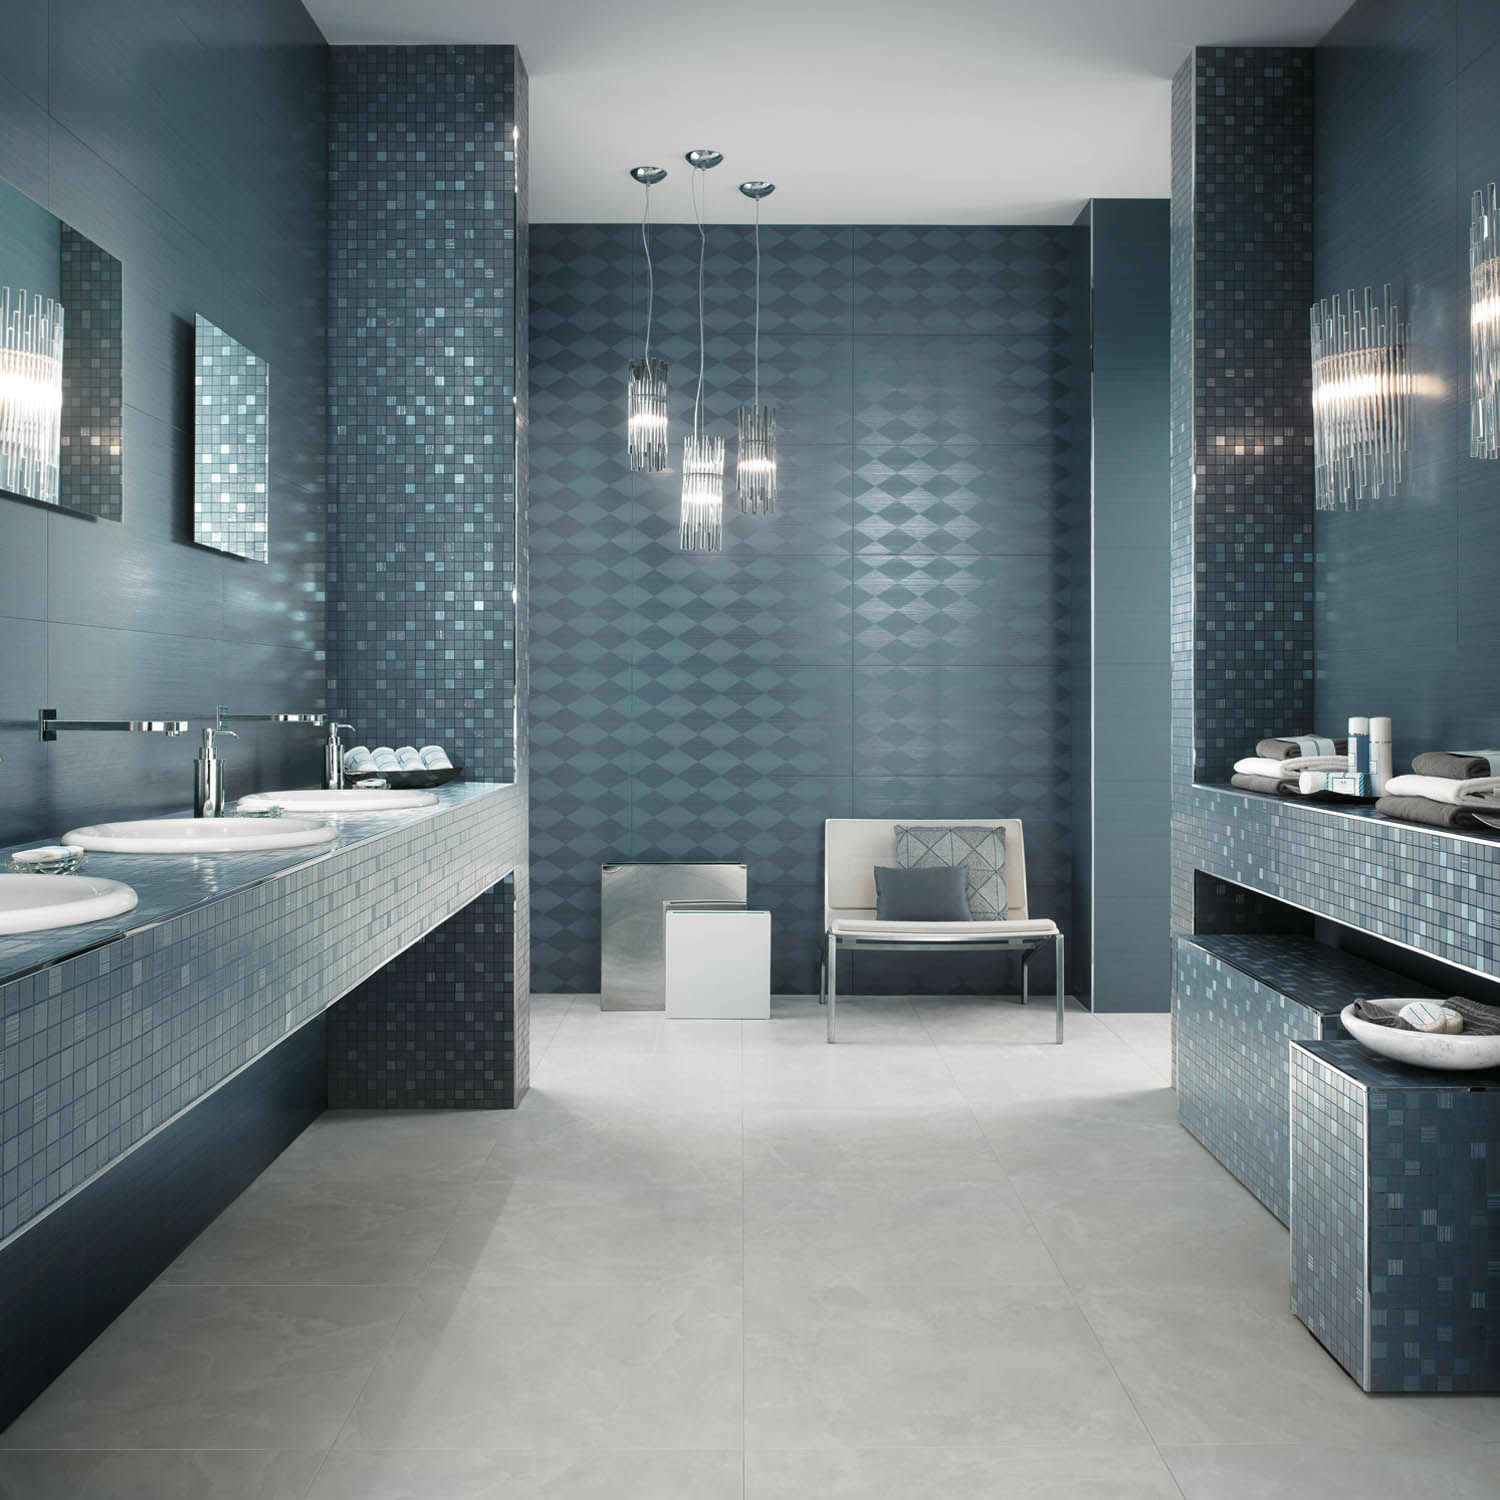 Bathroom Tiles Modern 30 nice pictures and ideas of modern floor tiles for bathrooms